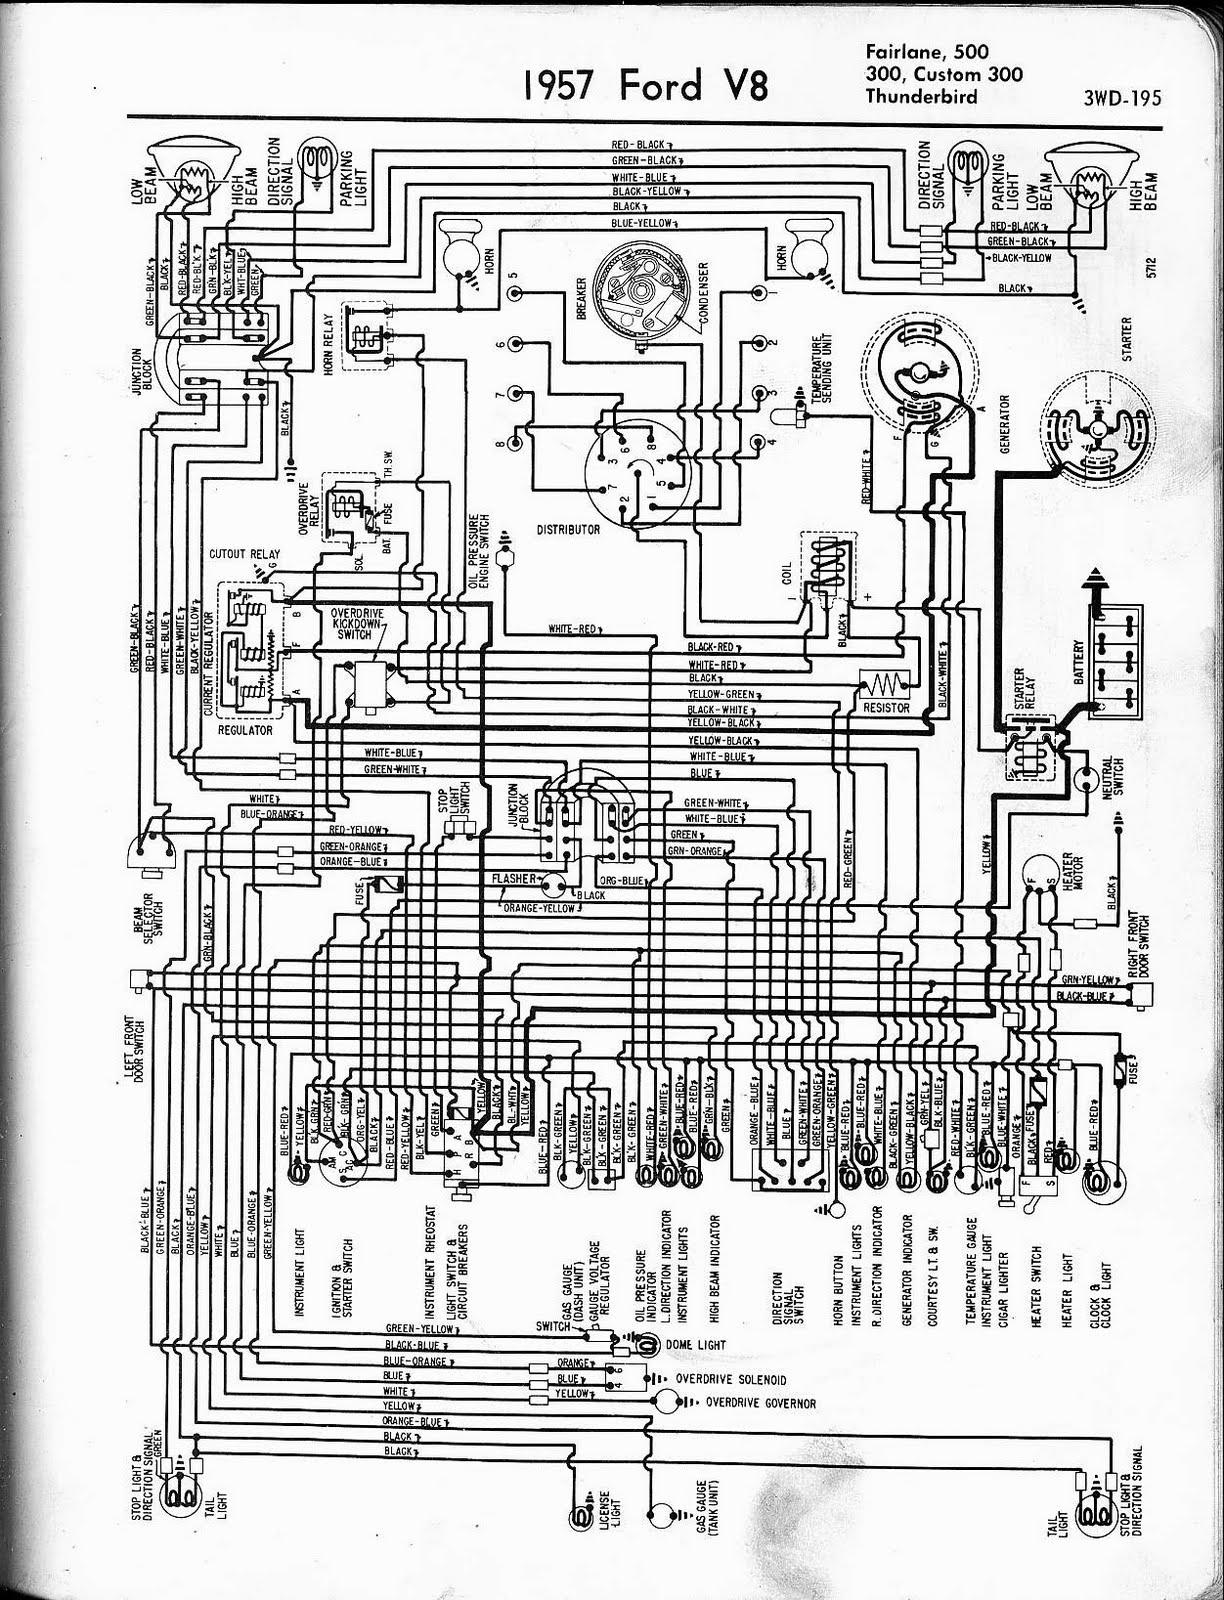 free auto wiring diagram 1957 ford v8 fairlane custom300 2006 Ford Crown  Victoria Fuse Box Diagram 2005 ford crown victoria fuse box diagram